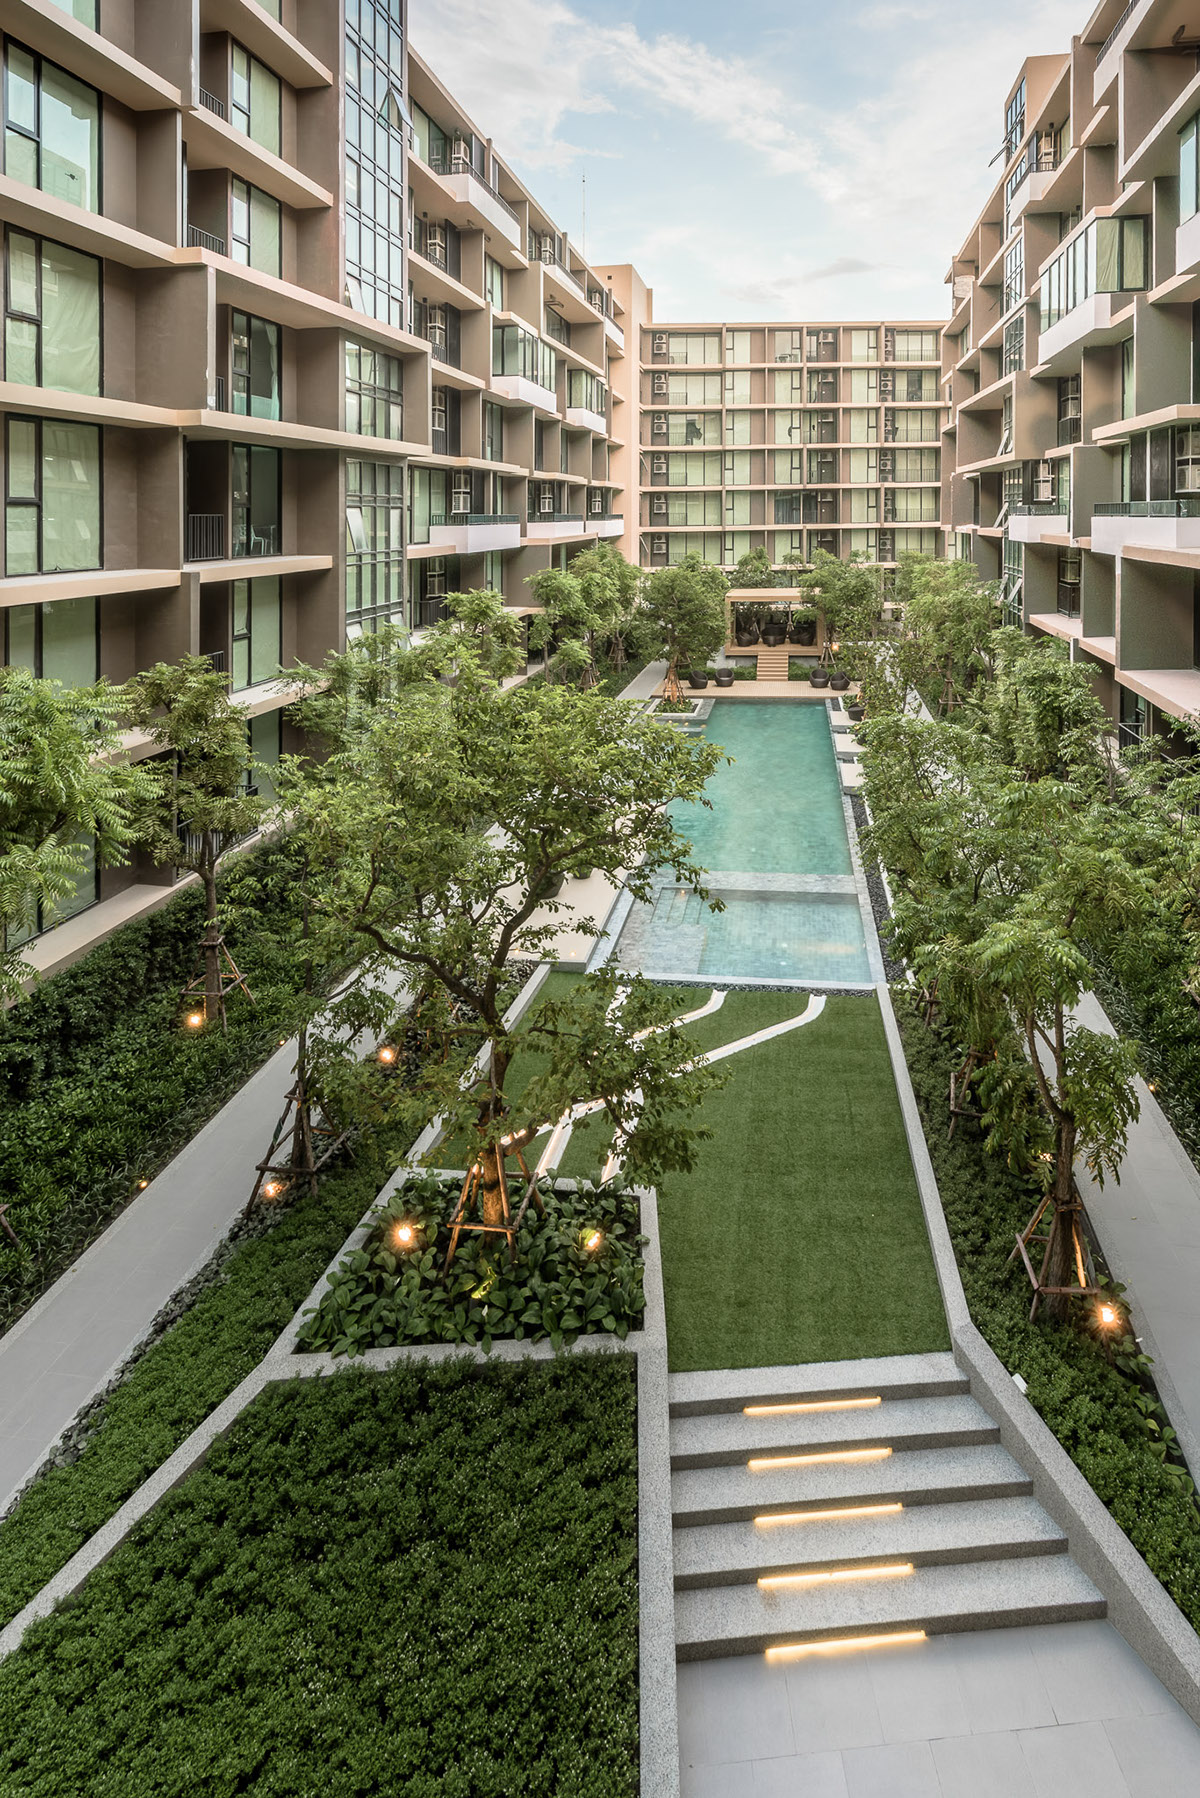 The Parque Condominium Courtyard By Tectonix Landscape On